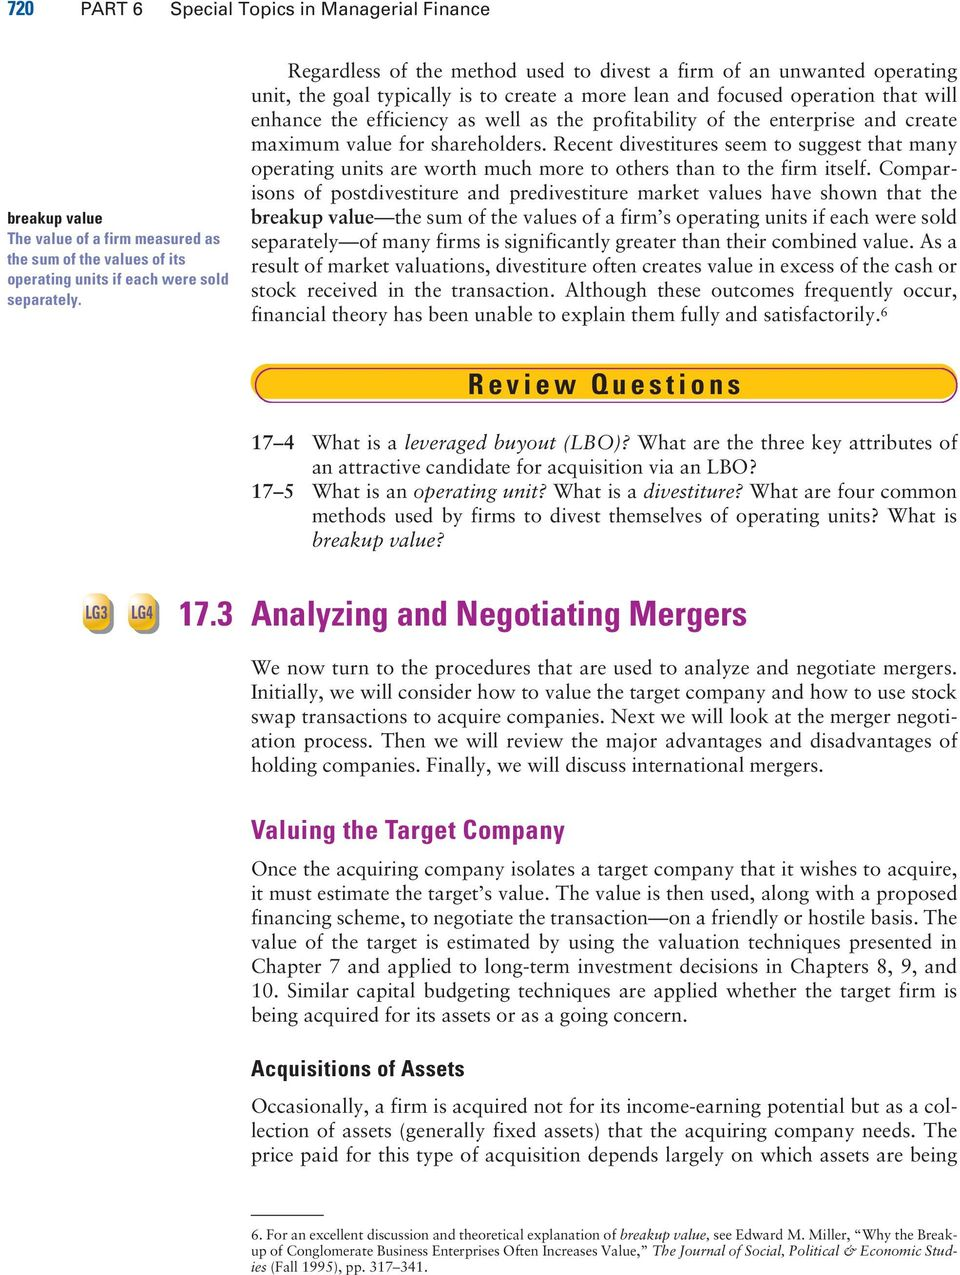 MERGERS, LBOS, DIVESTITURES, AND BUSINESS FAILURE - PDF